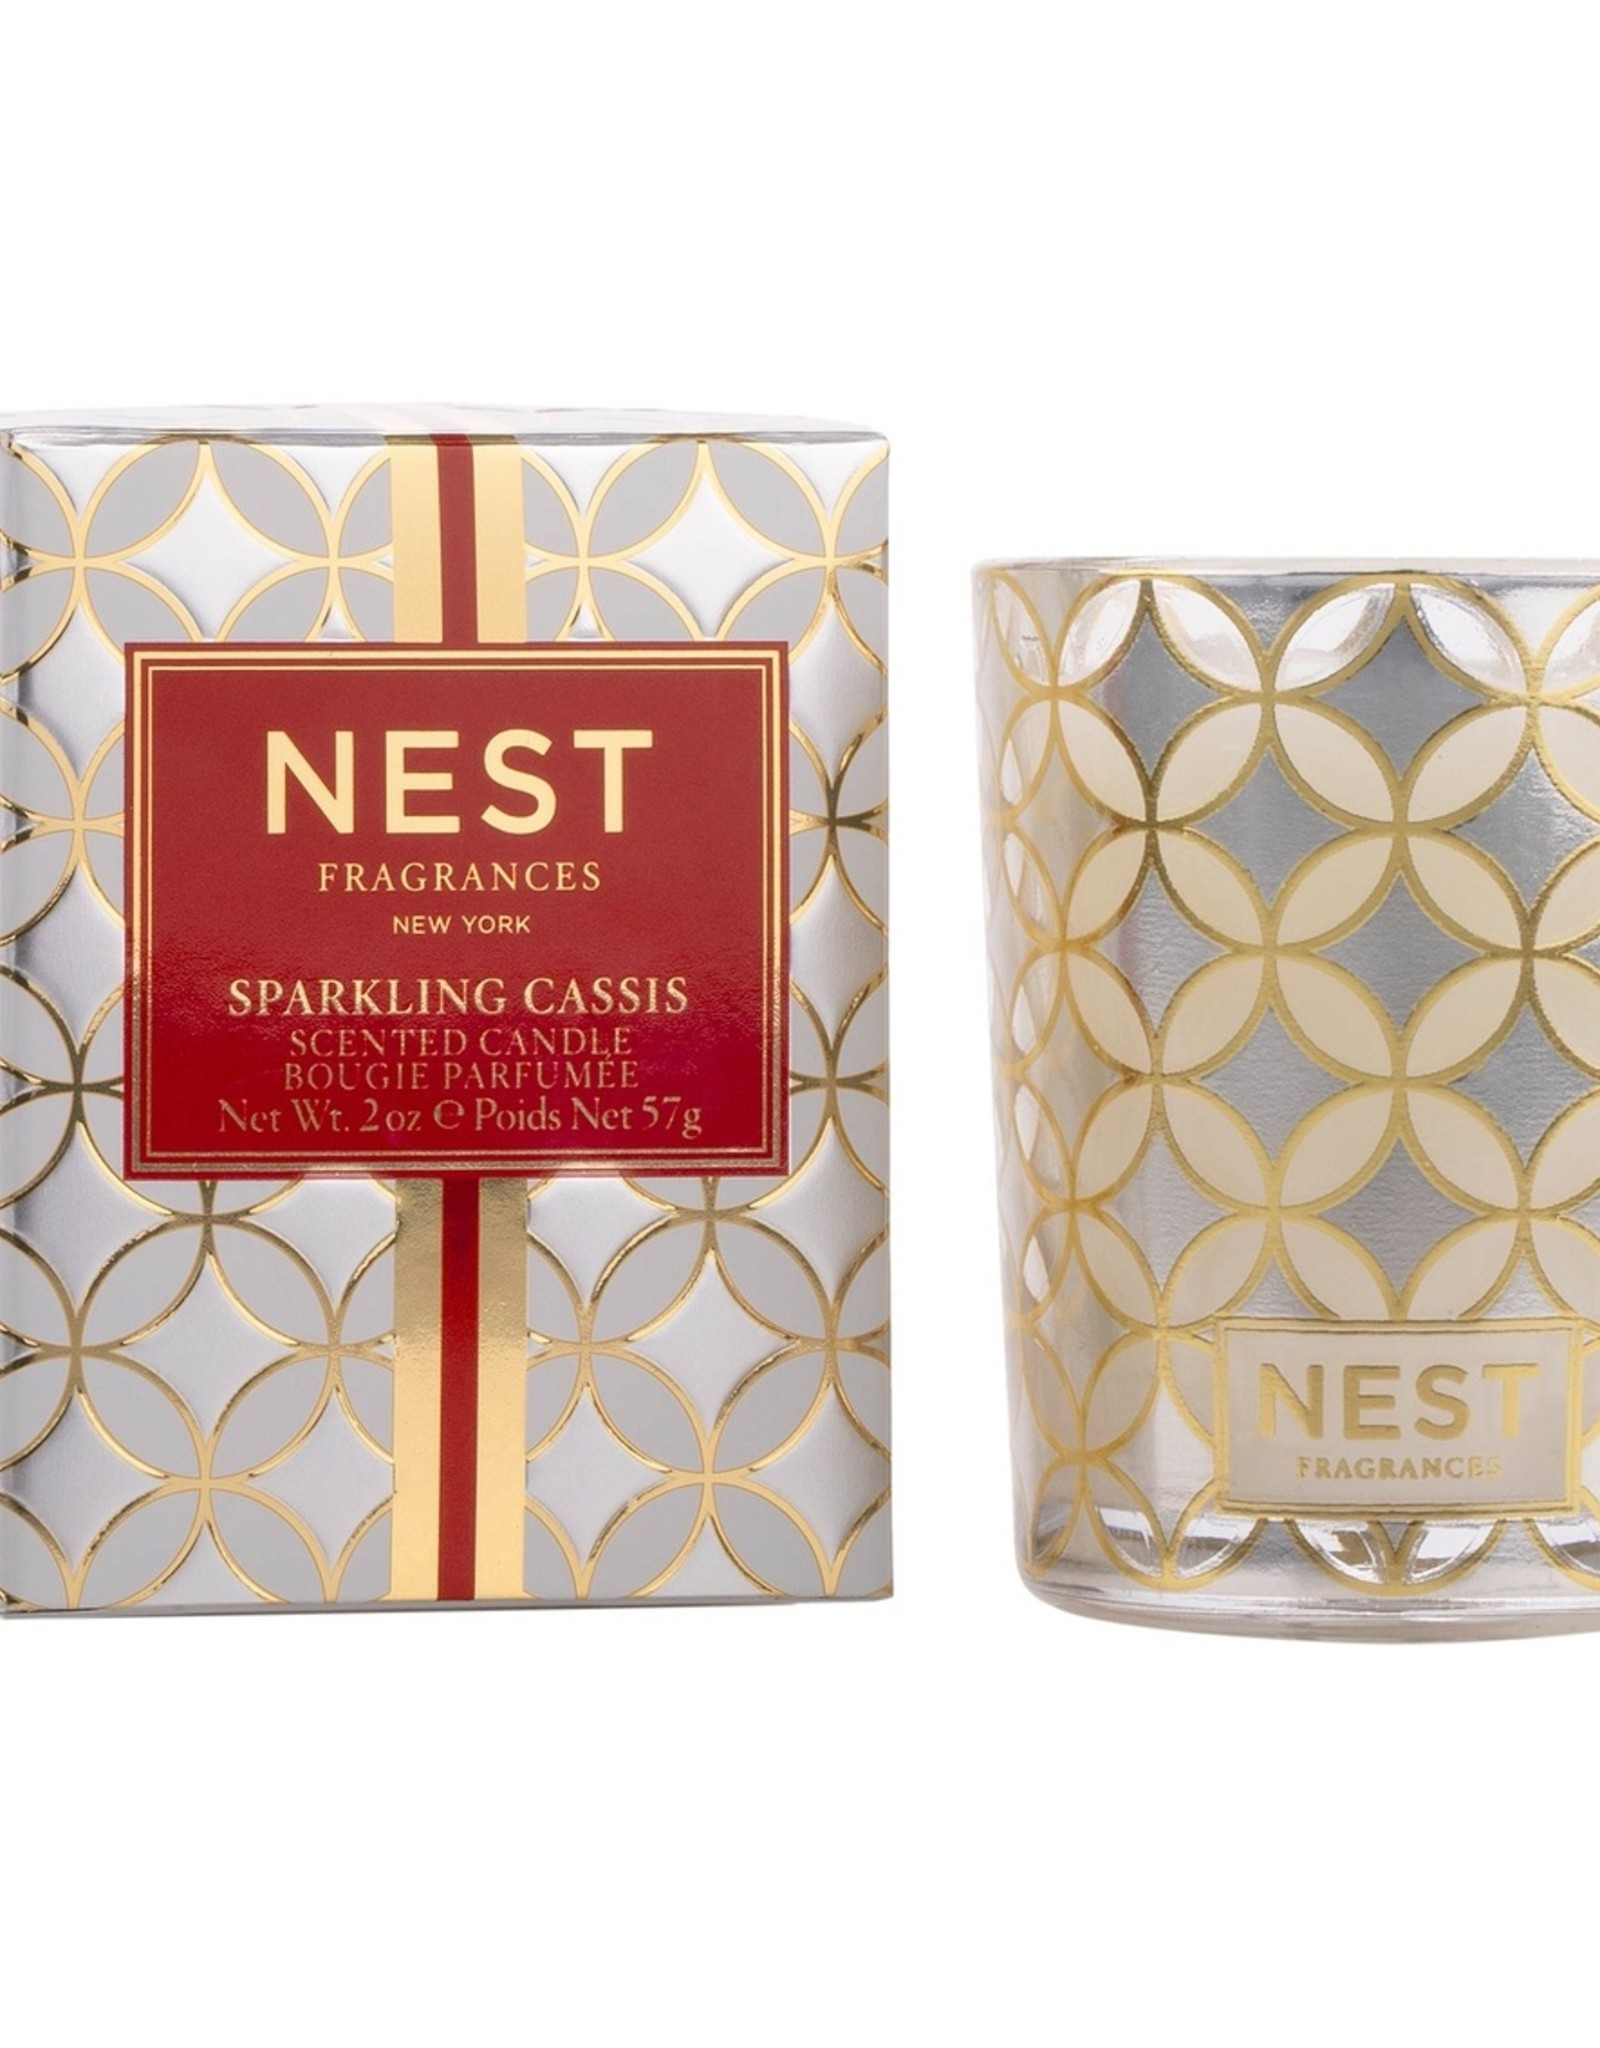 NF-NY Sparkling Cassis Votive Candle